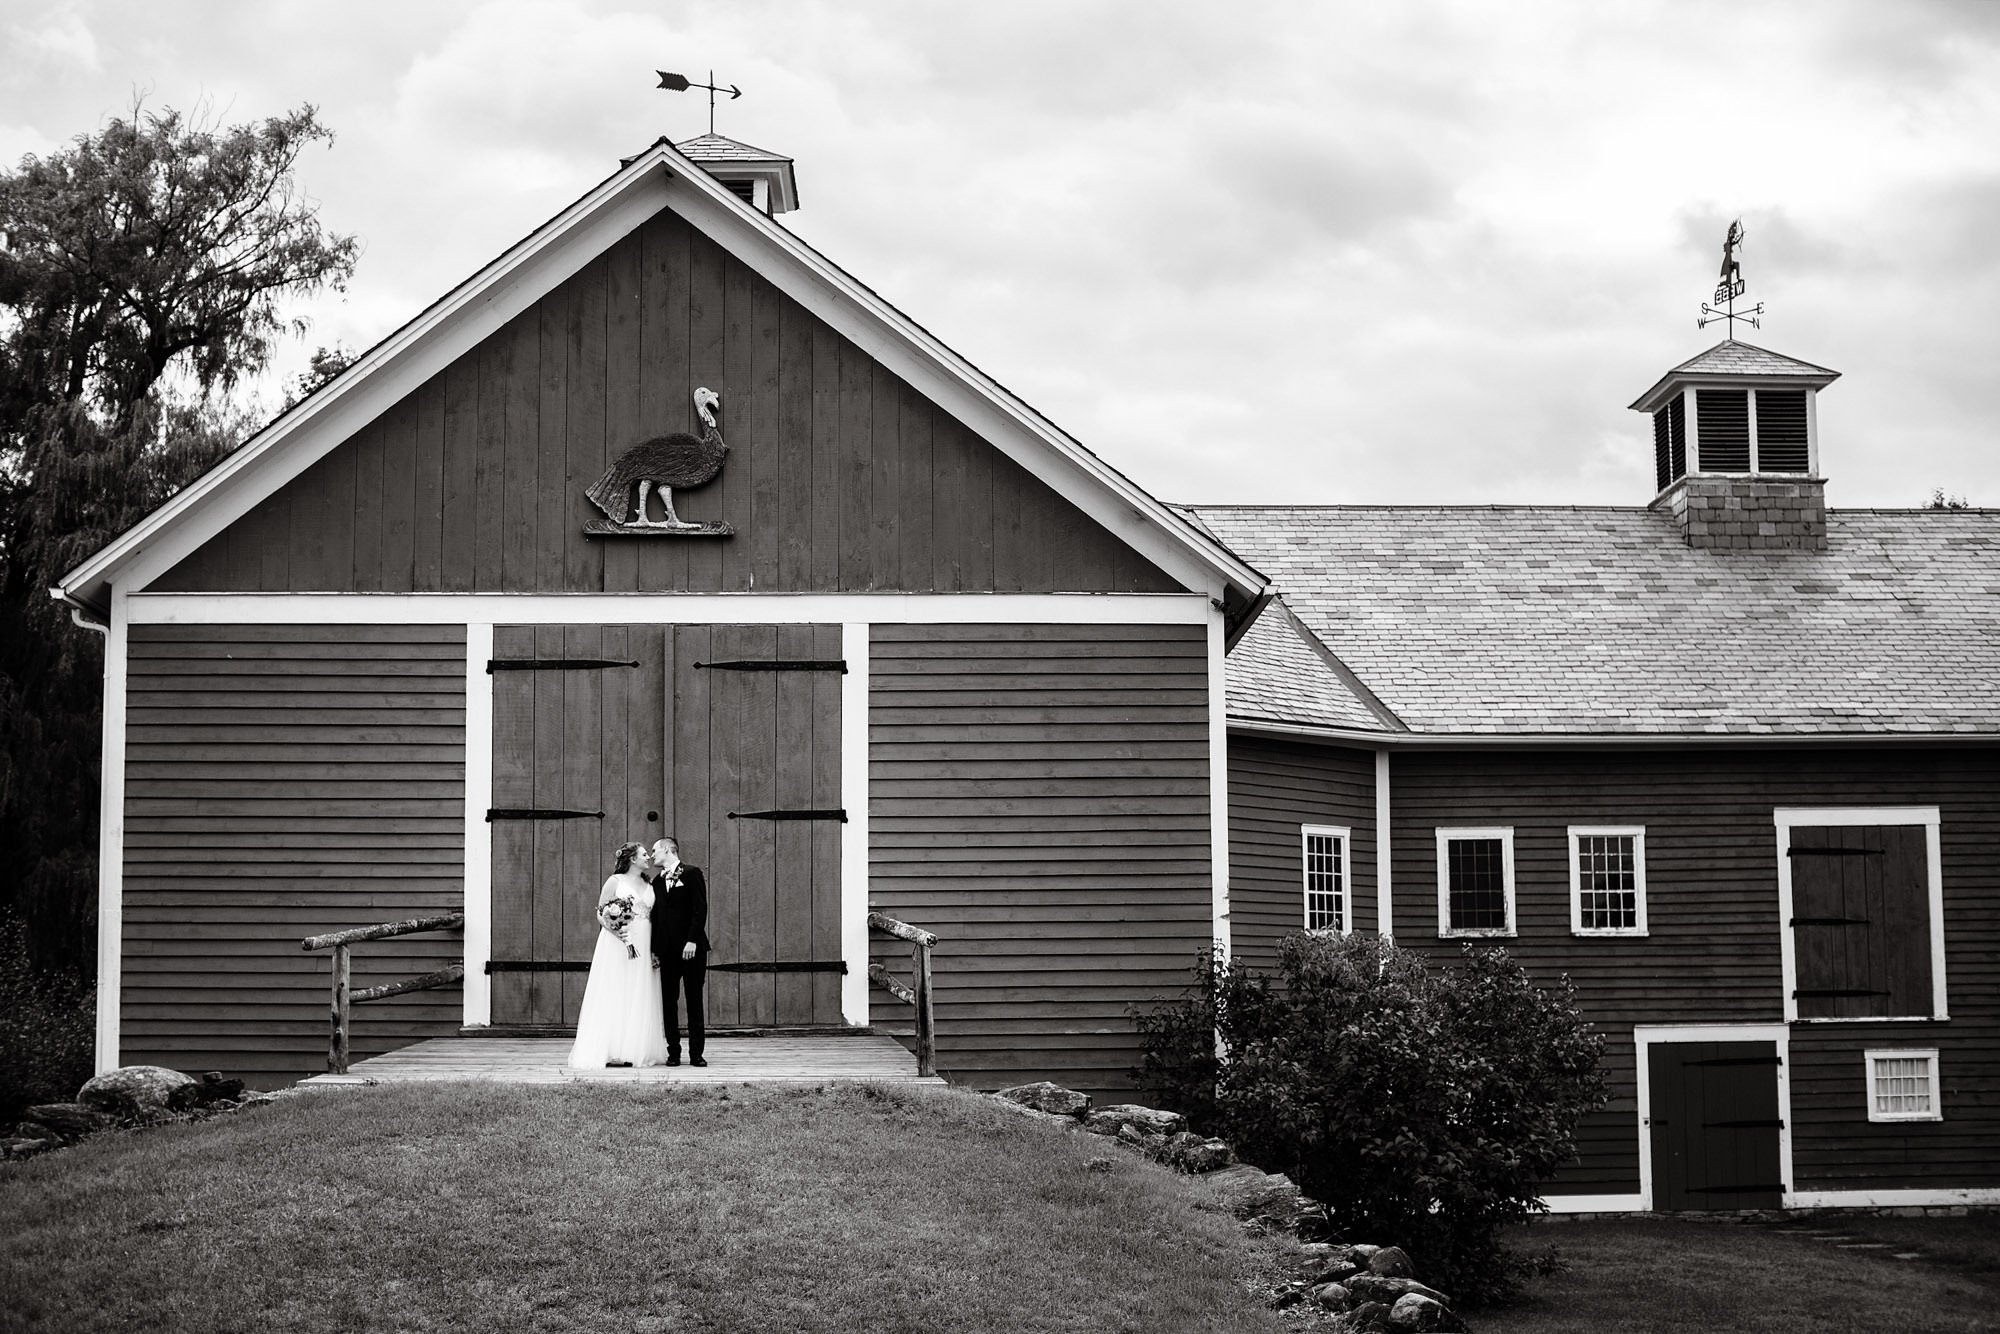 Shelburne Museum Wedding  I  The bride and groom kiss in front of a barn in Shelburne, VT.